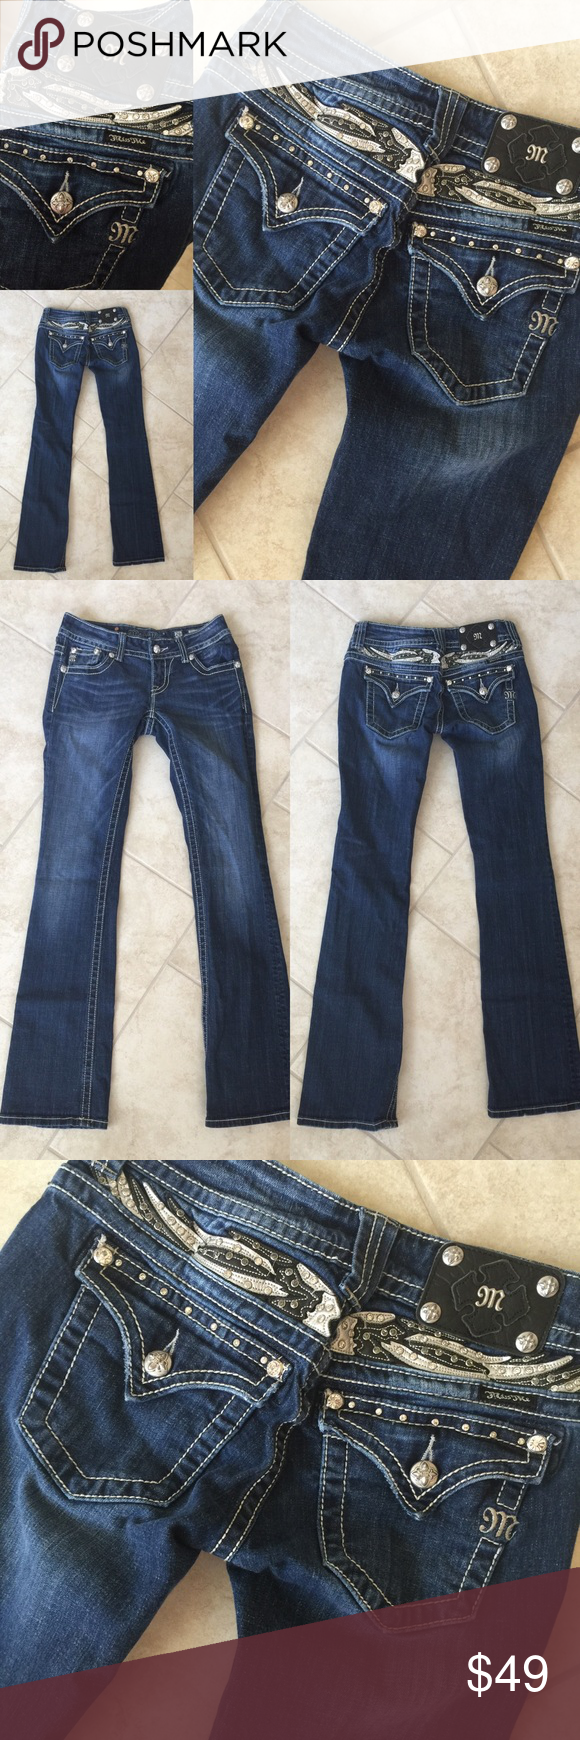 MISS ME 🎀 Rhinestone BLING Jeans, Boot, 26 X 34 Great condition! 💗💗💗 AX201816G Miss Me Jeans Boot Cut